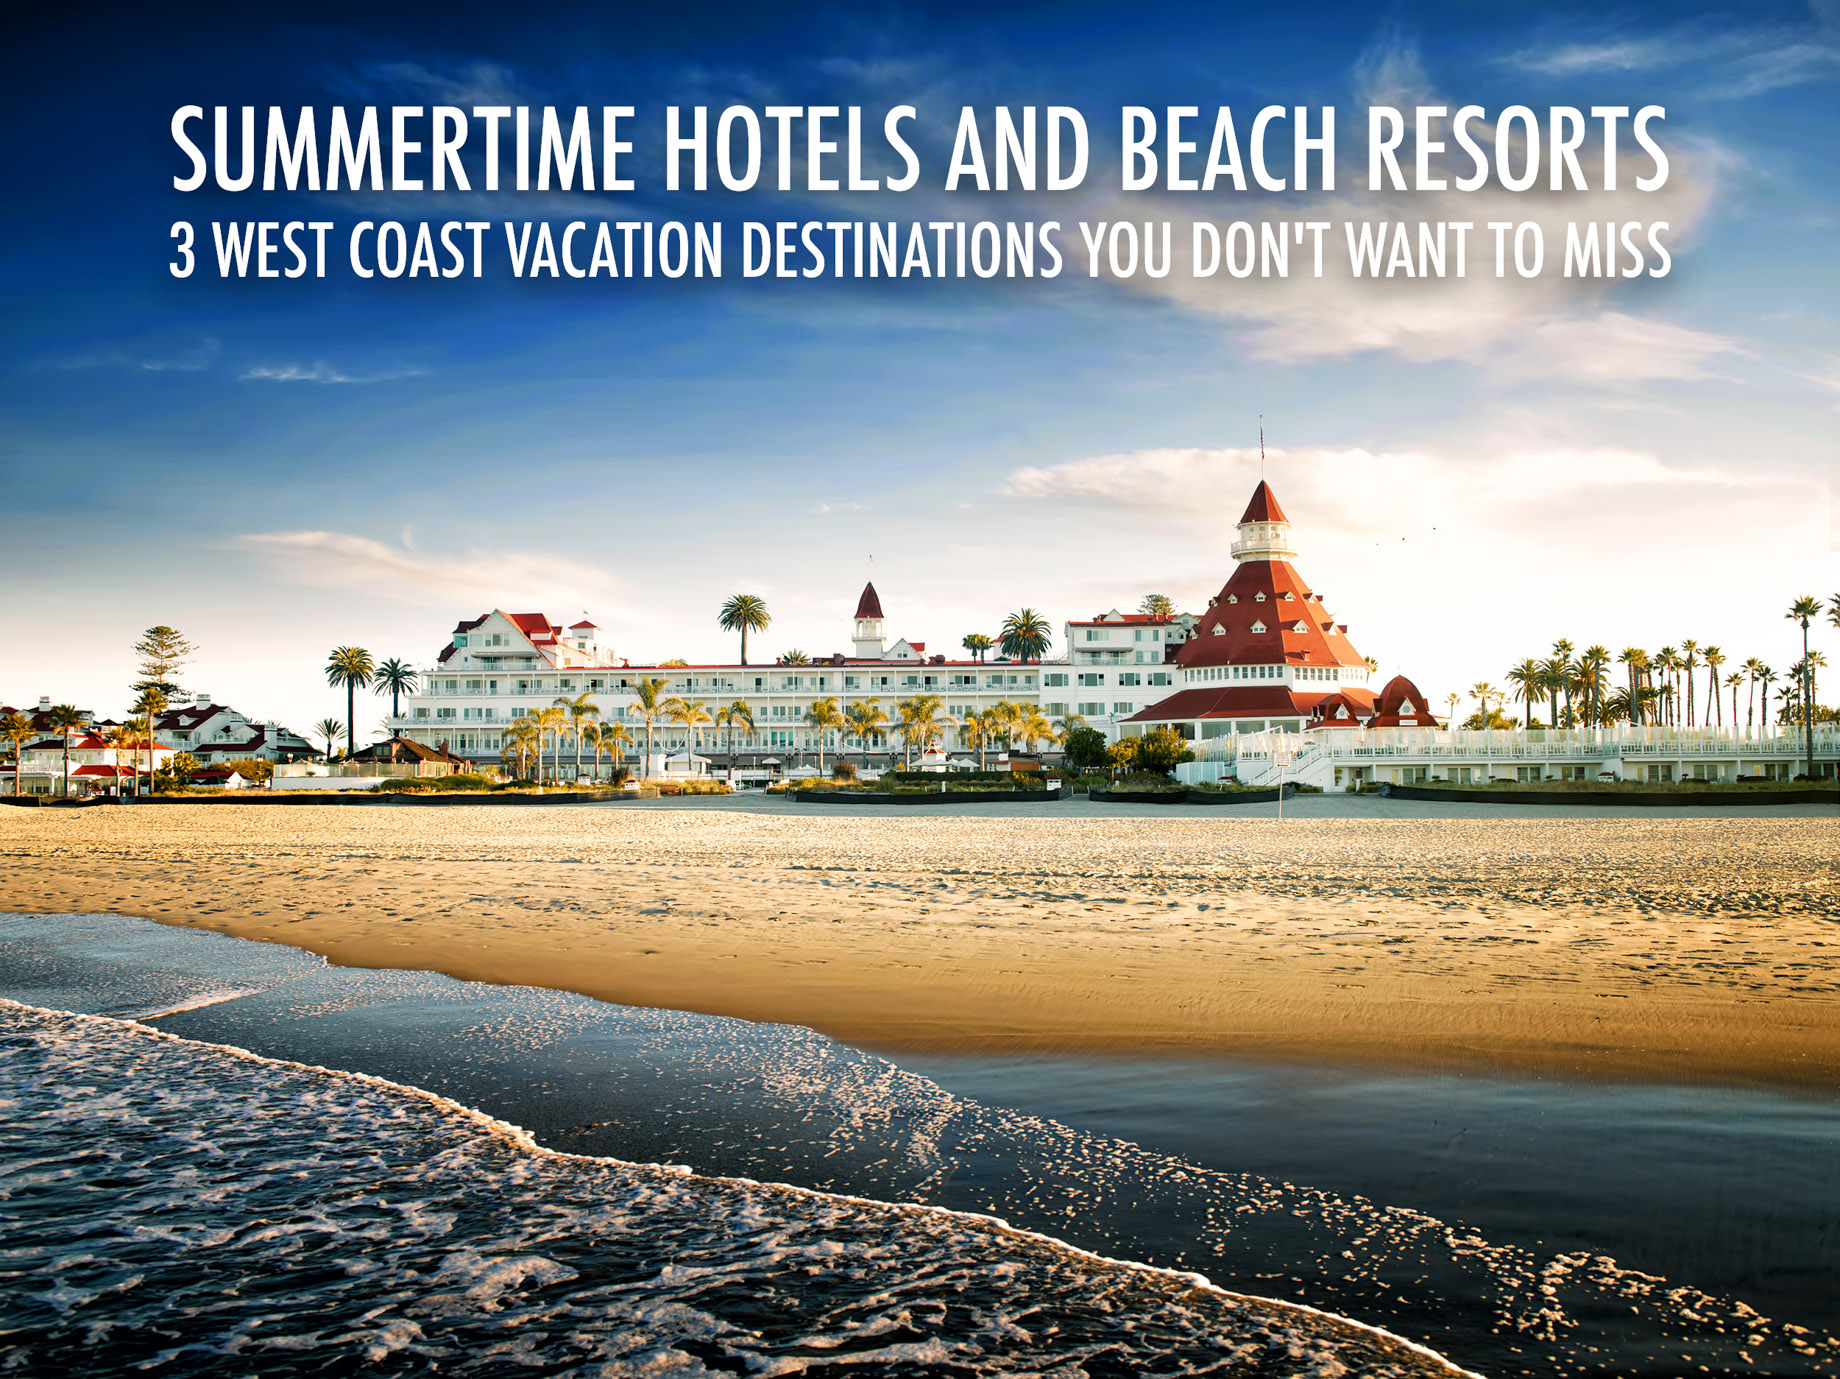 Summertime Hotels and Beach Resorts - 3 West Coast Vacation Destinations You Don't Want to Miss